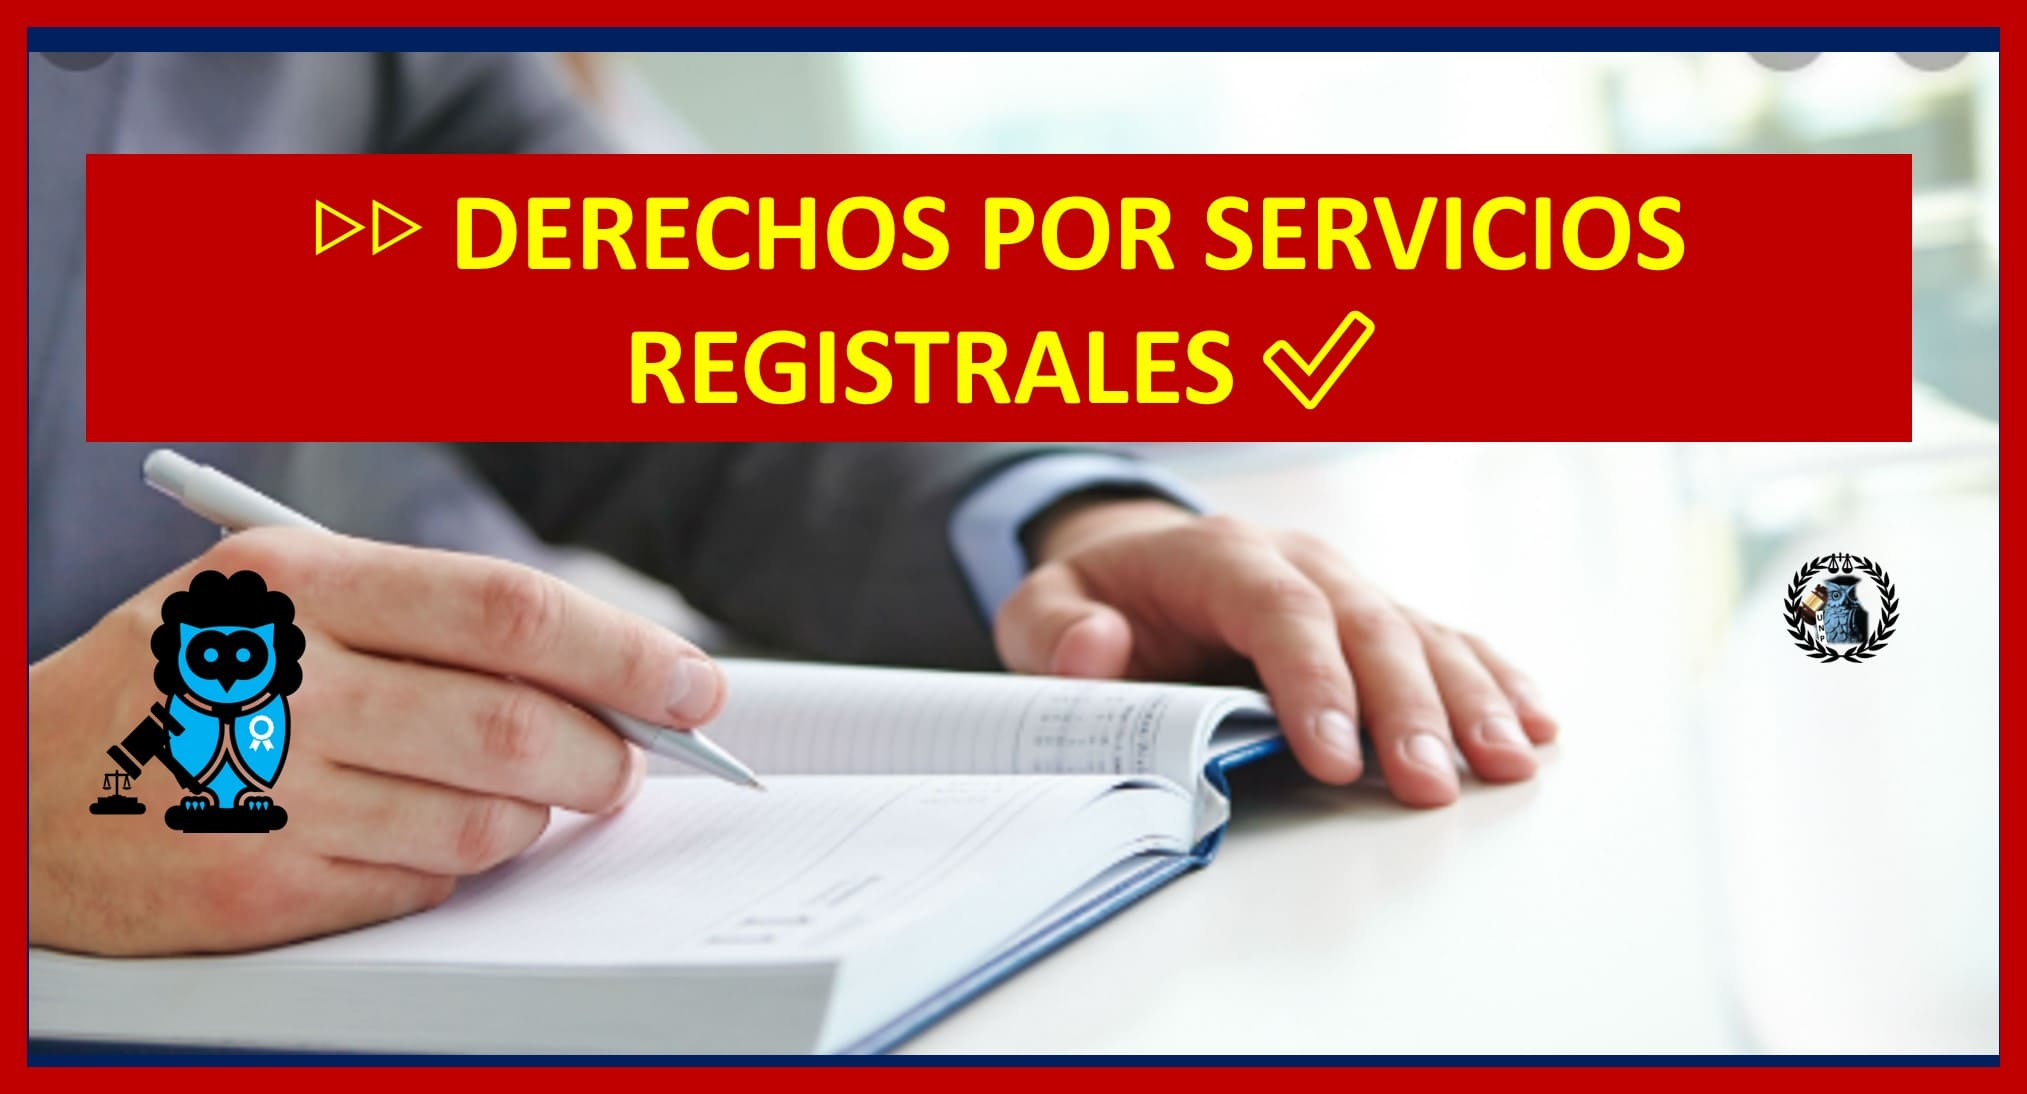 Photo of DERECHOS POR SERVICIOS REGISTRALES